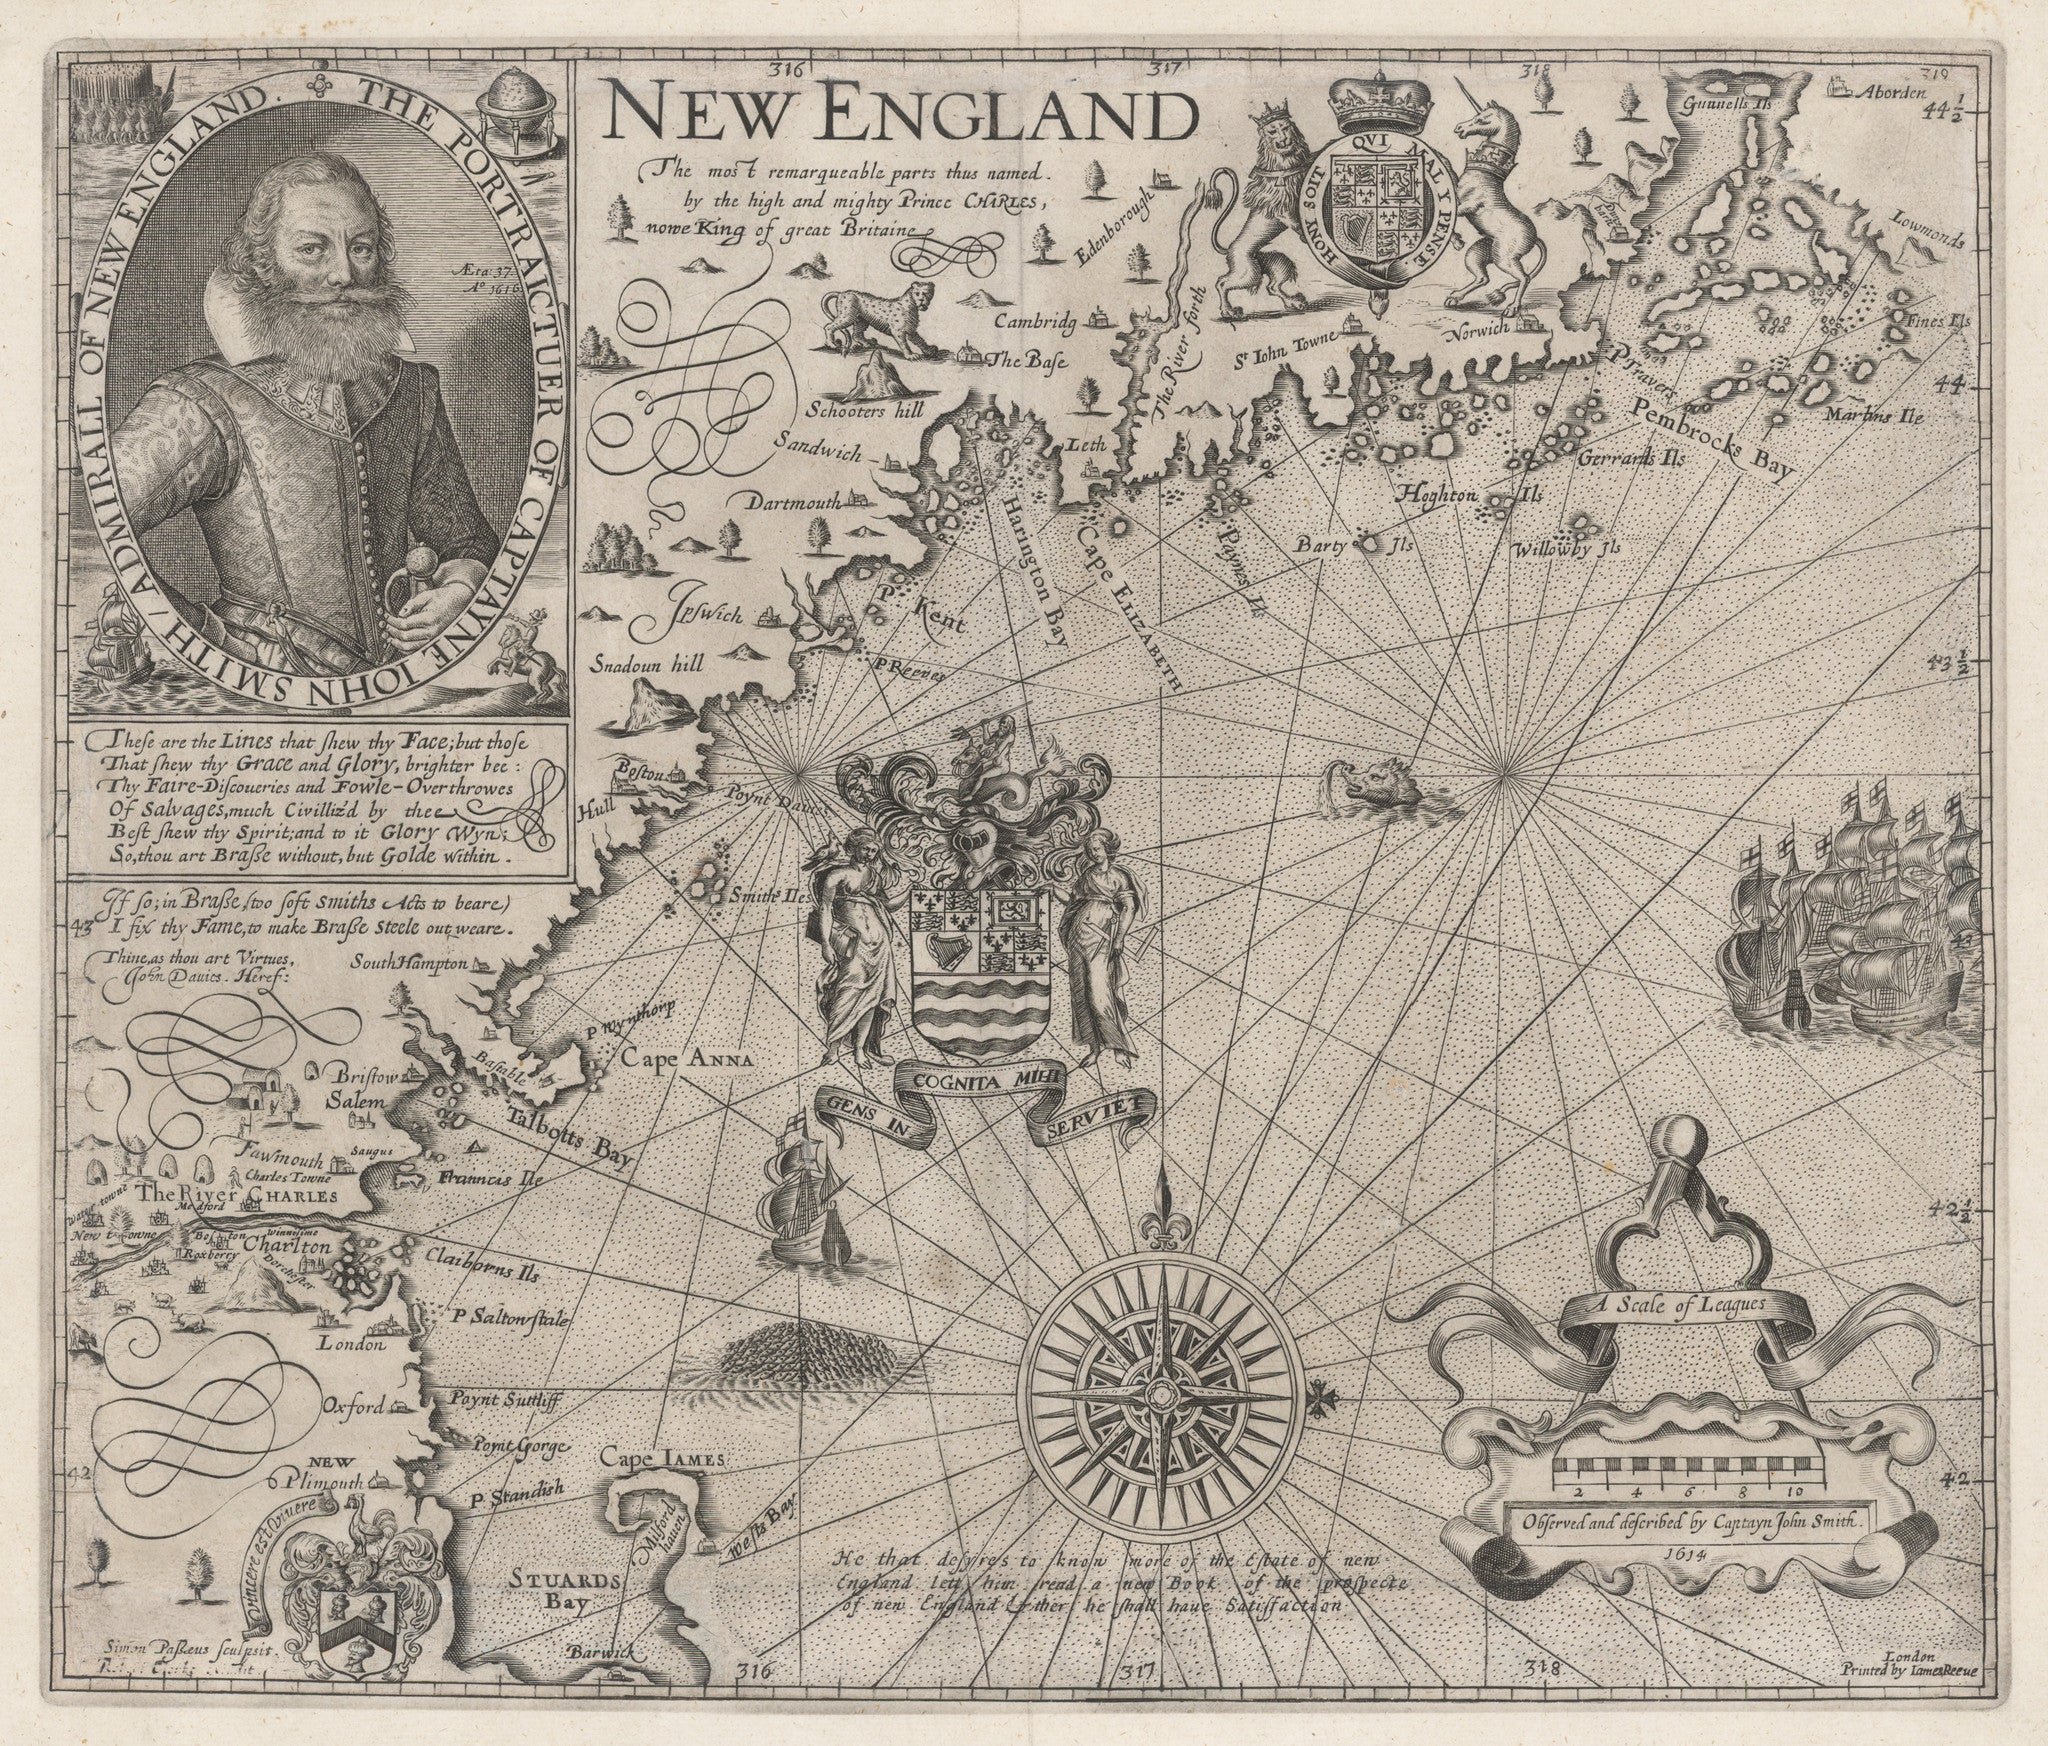 1635 New England.... Observed and Described by Captayn John Smith